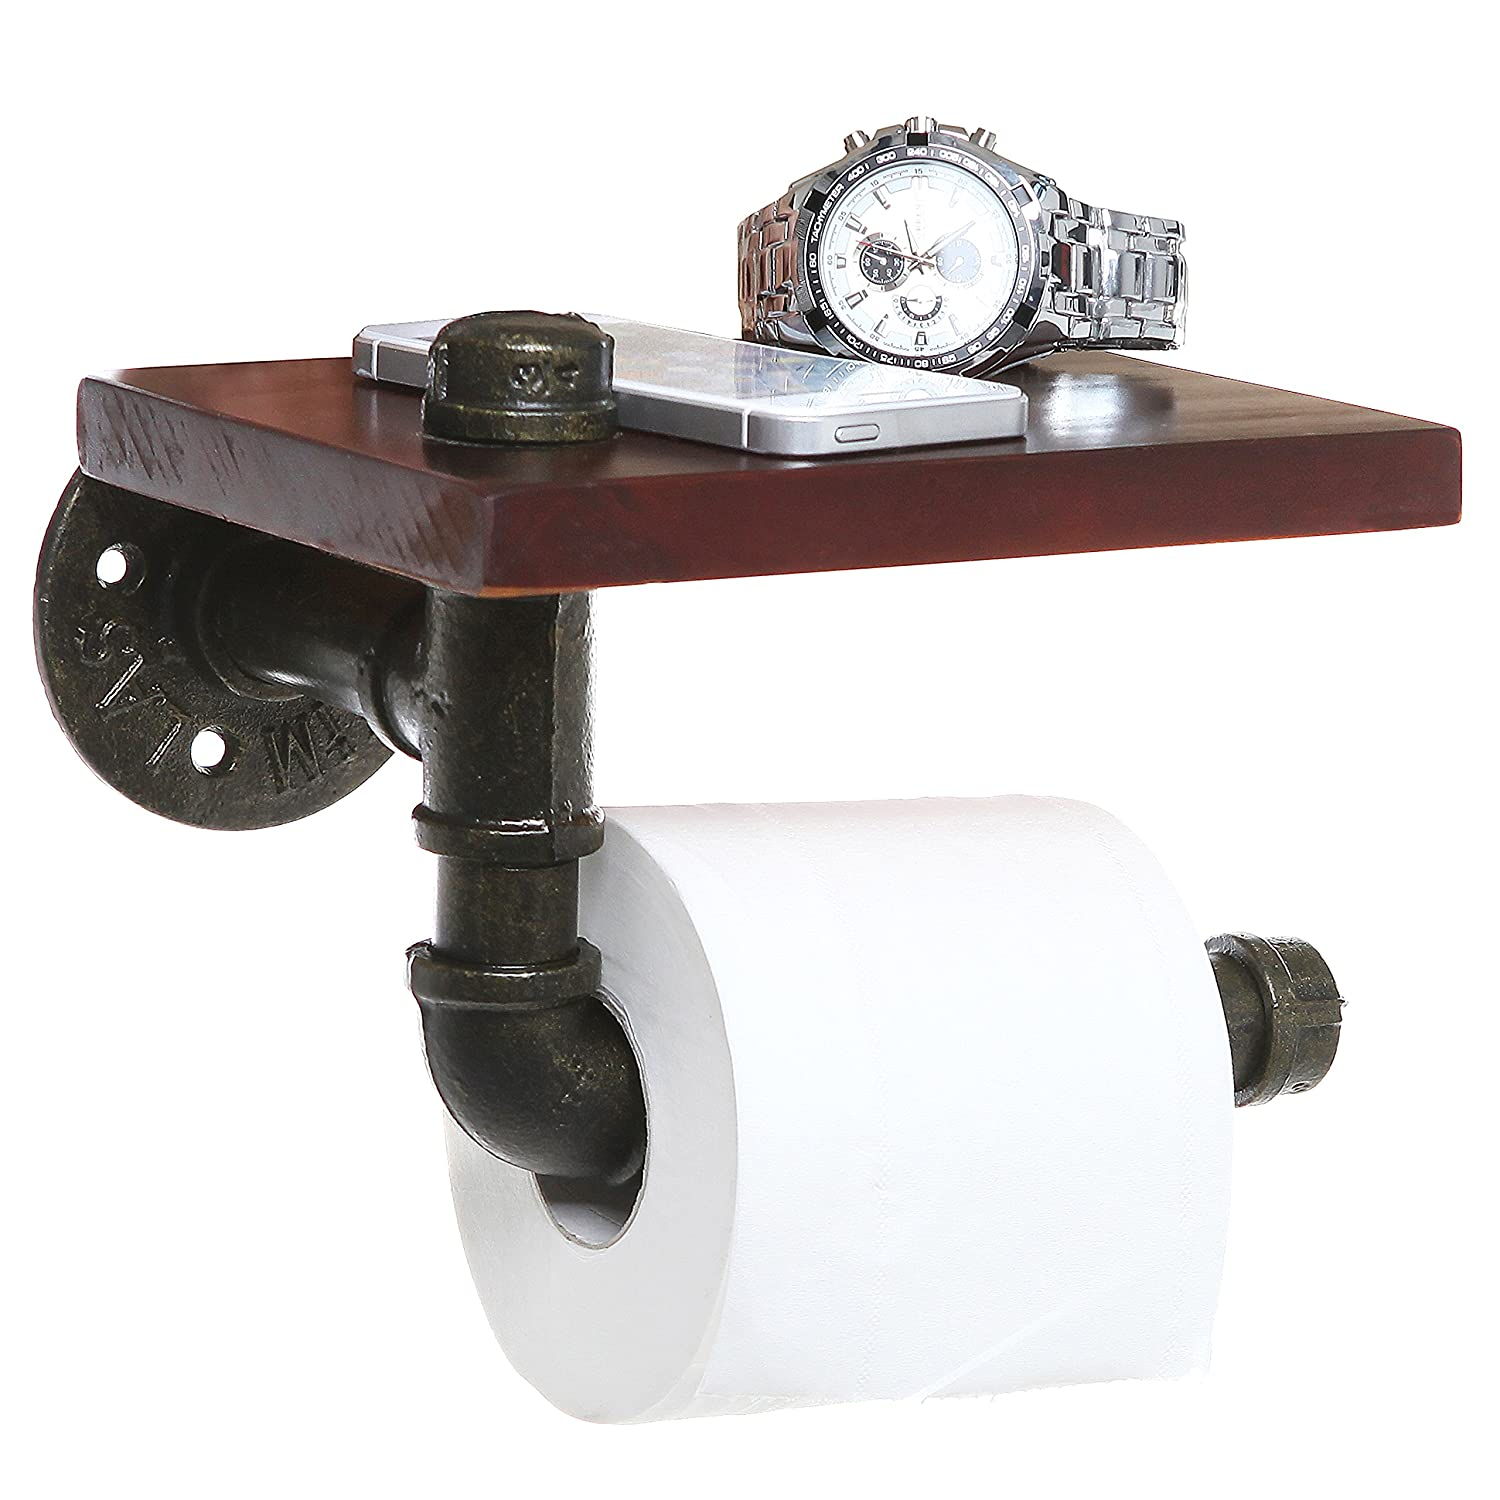 Modern bathroom toilet paper holder - Most Gifted